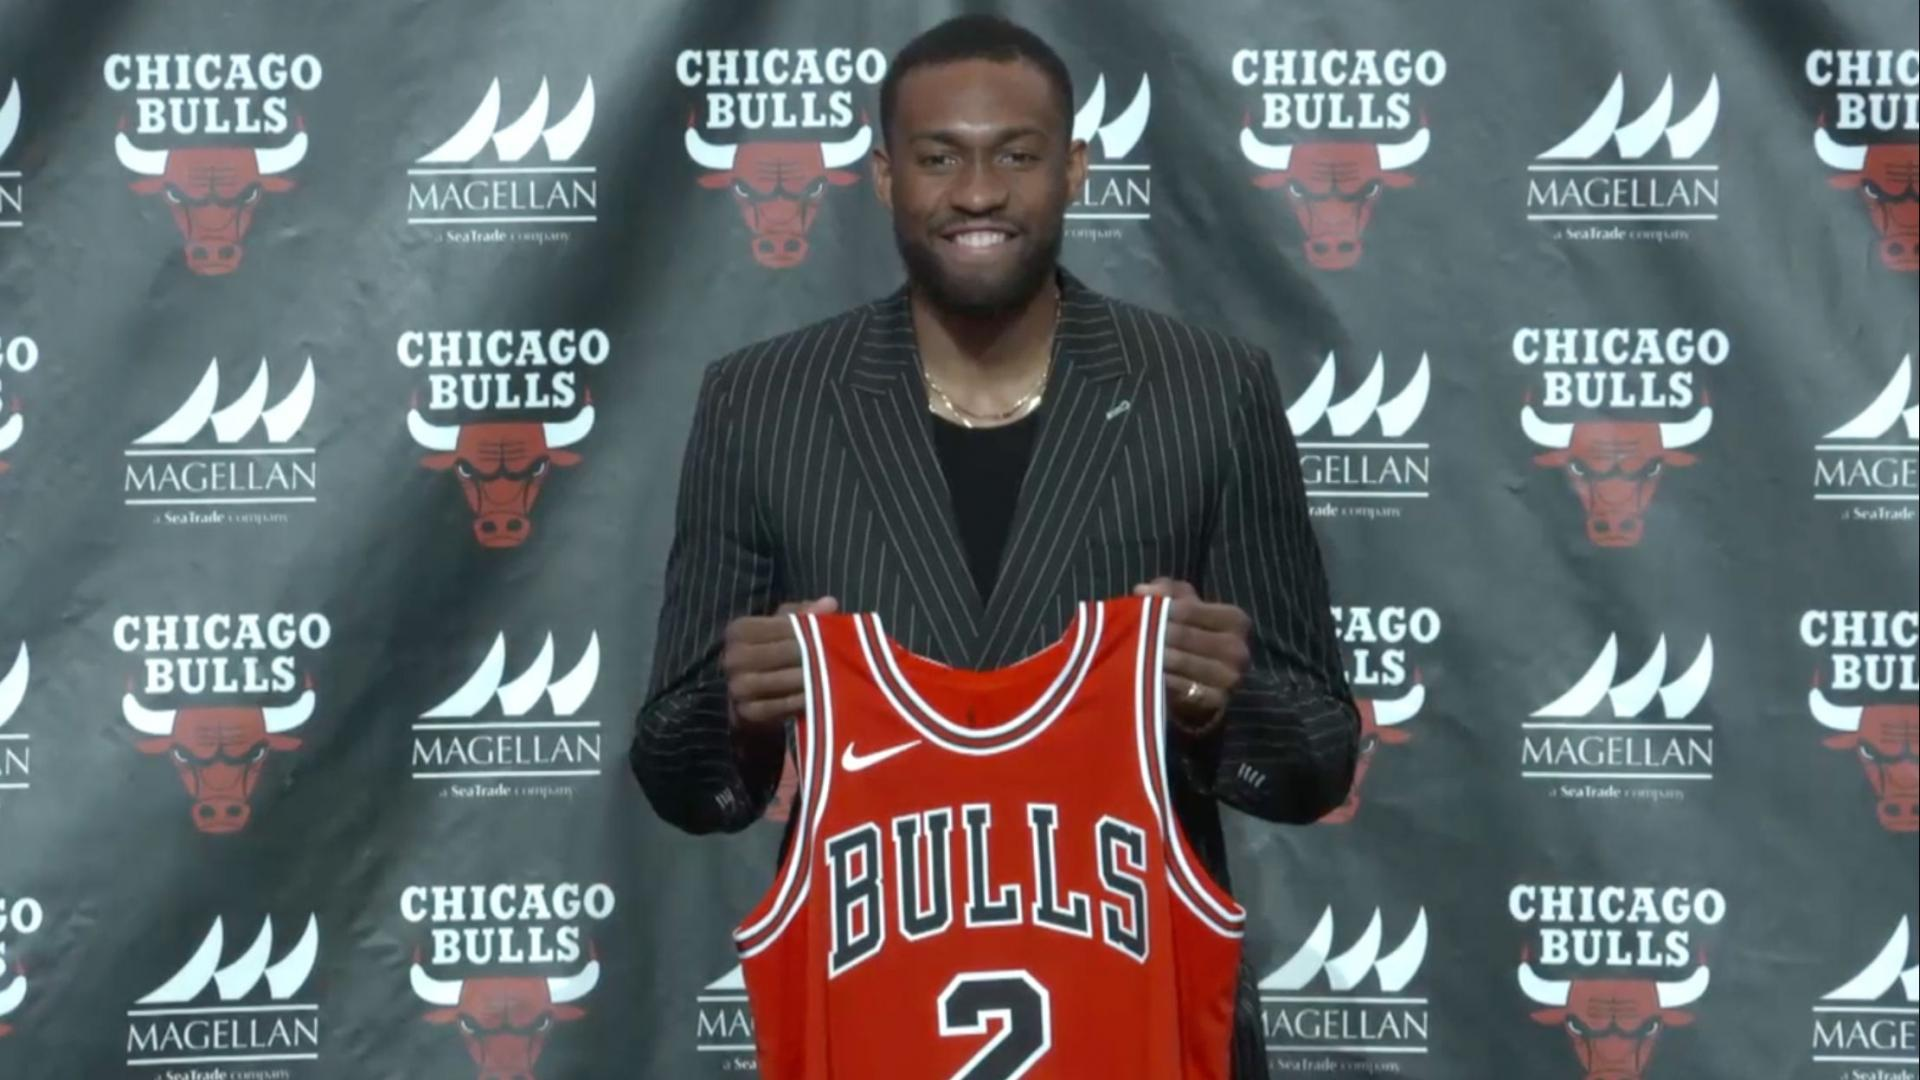 finest selection df666 0adab Bulls TV: Parker Excited to Play in Chicago | NBA.com